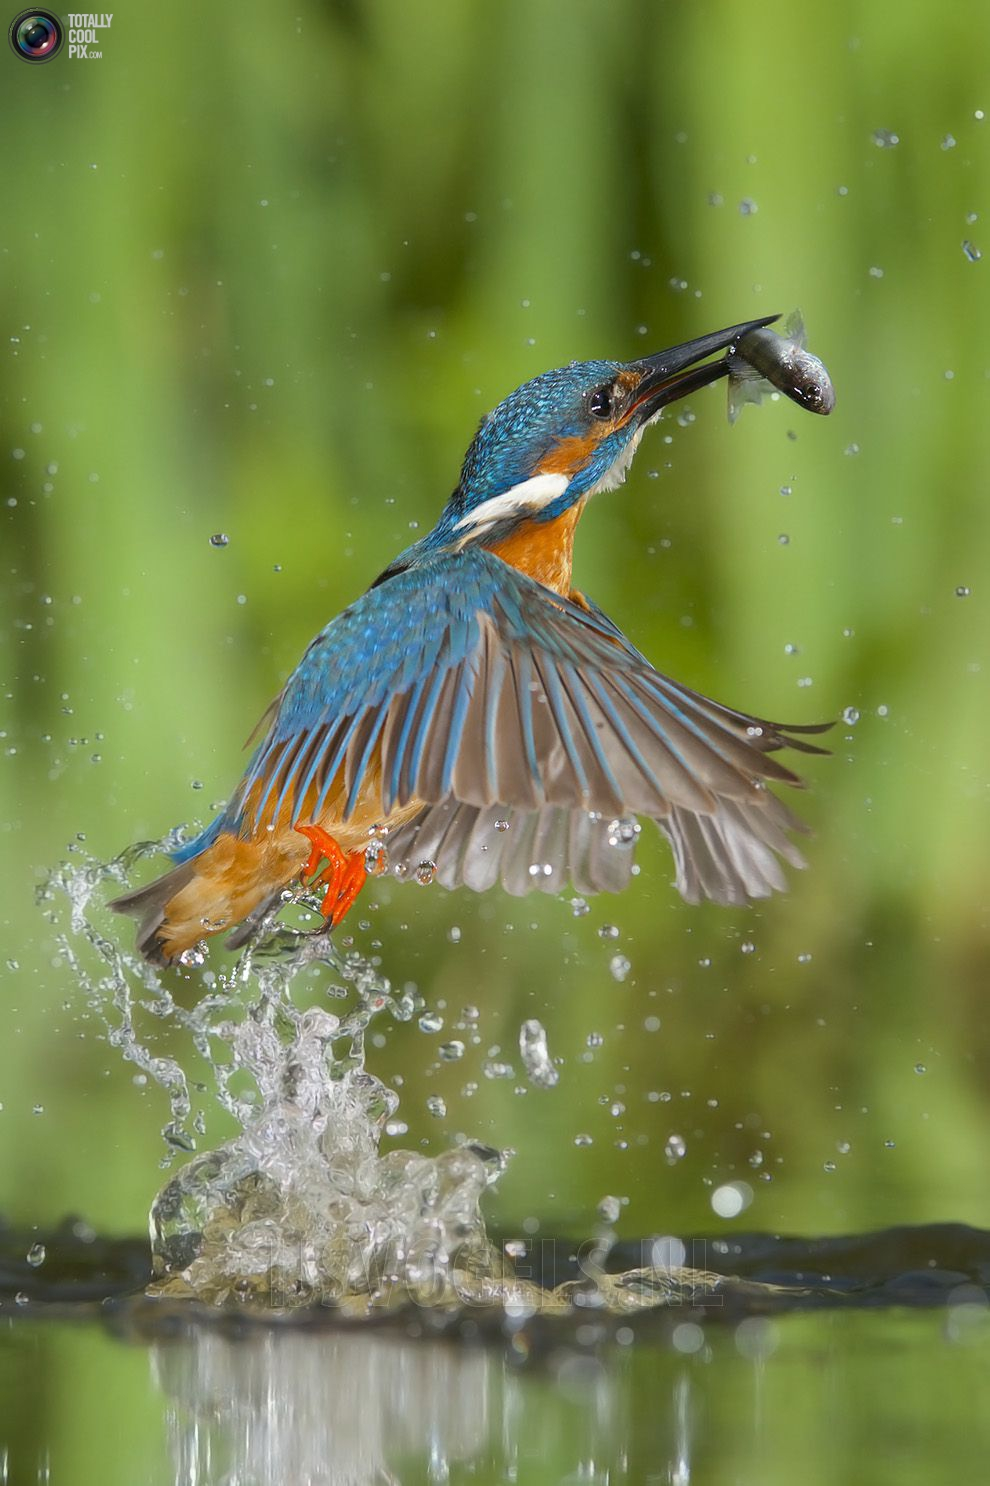 Stunning footage of catching fish by Kingfisher 17